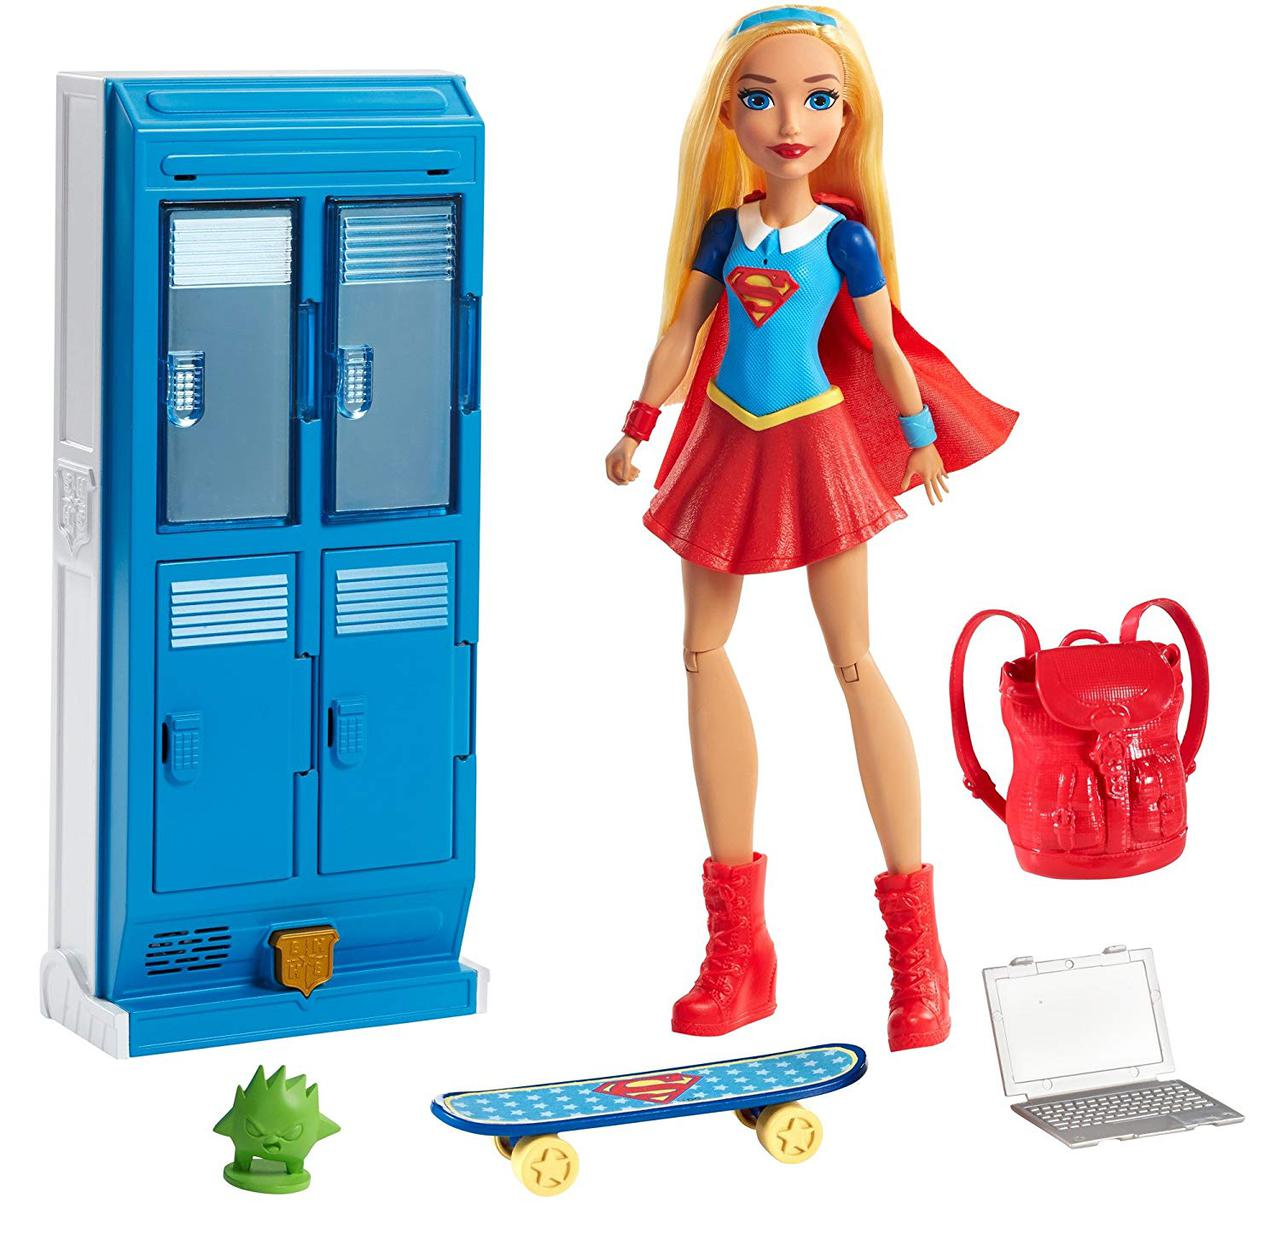 Mattel Супер девушка с аксессуарами DC Super Hero Girls Supergirl Locker Accessory & Doll